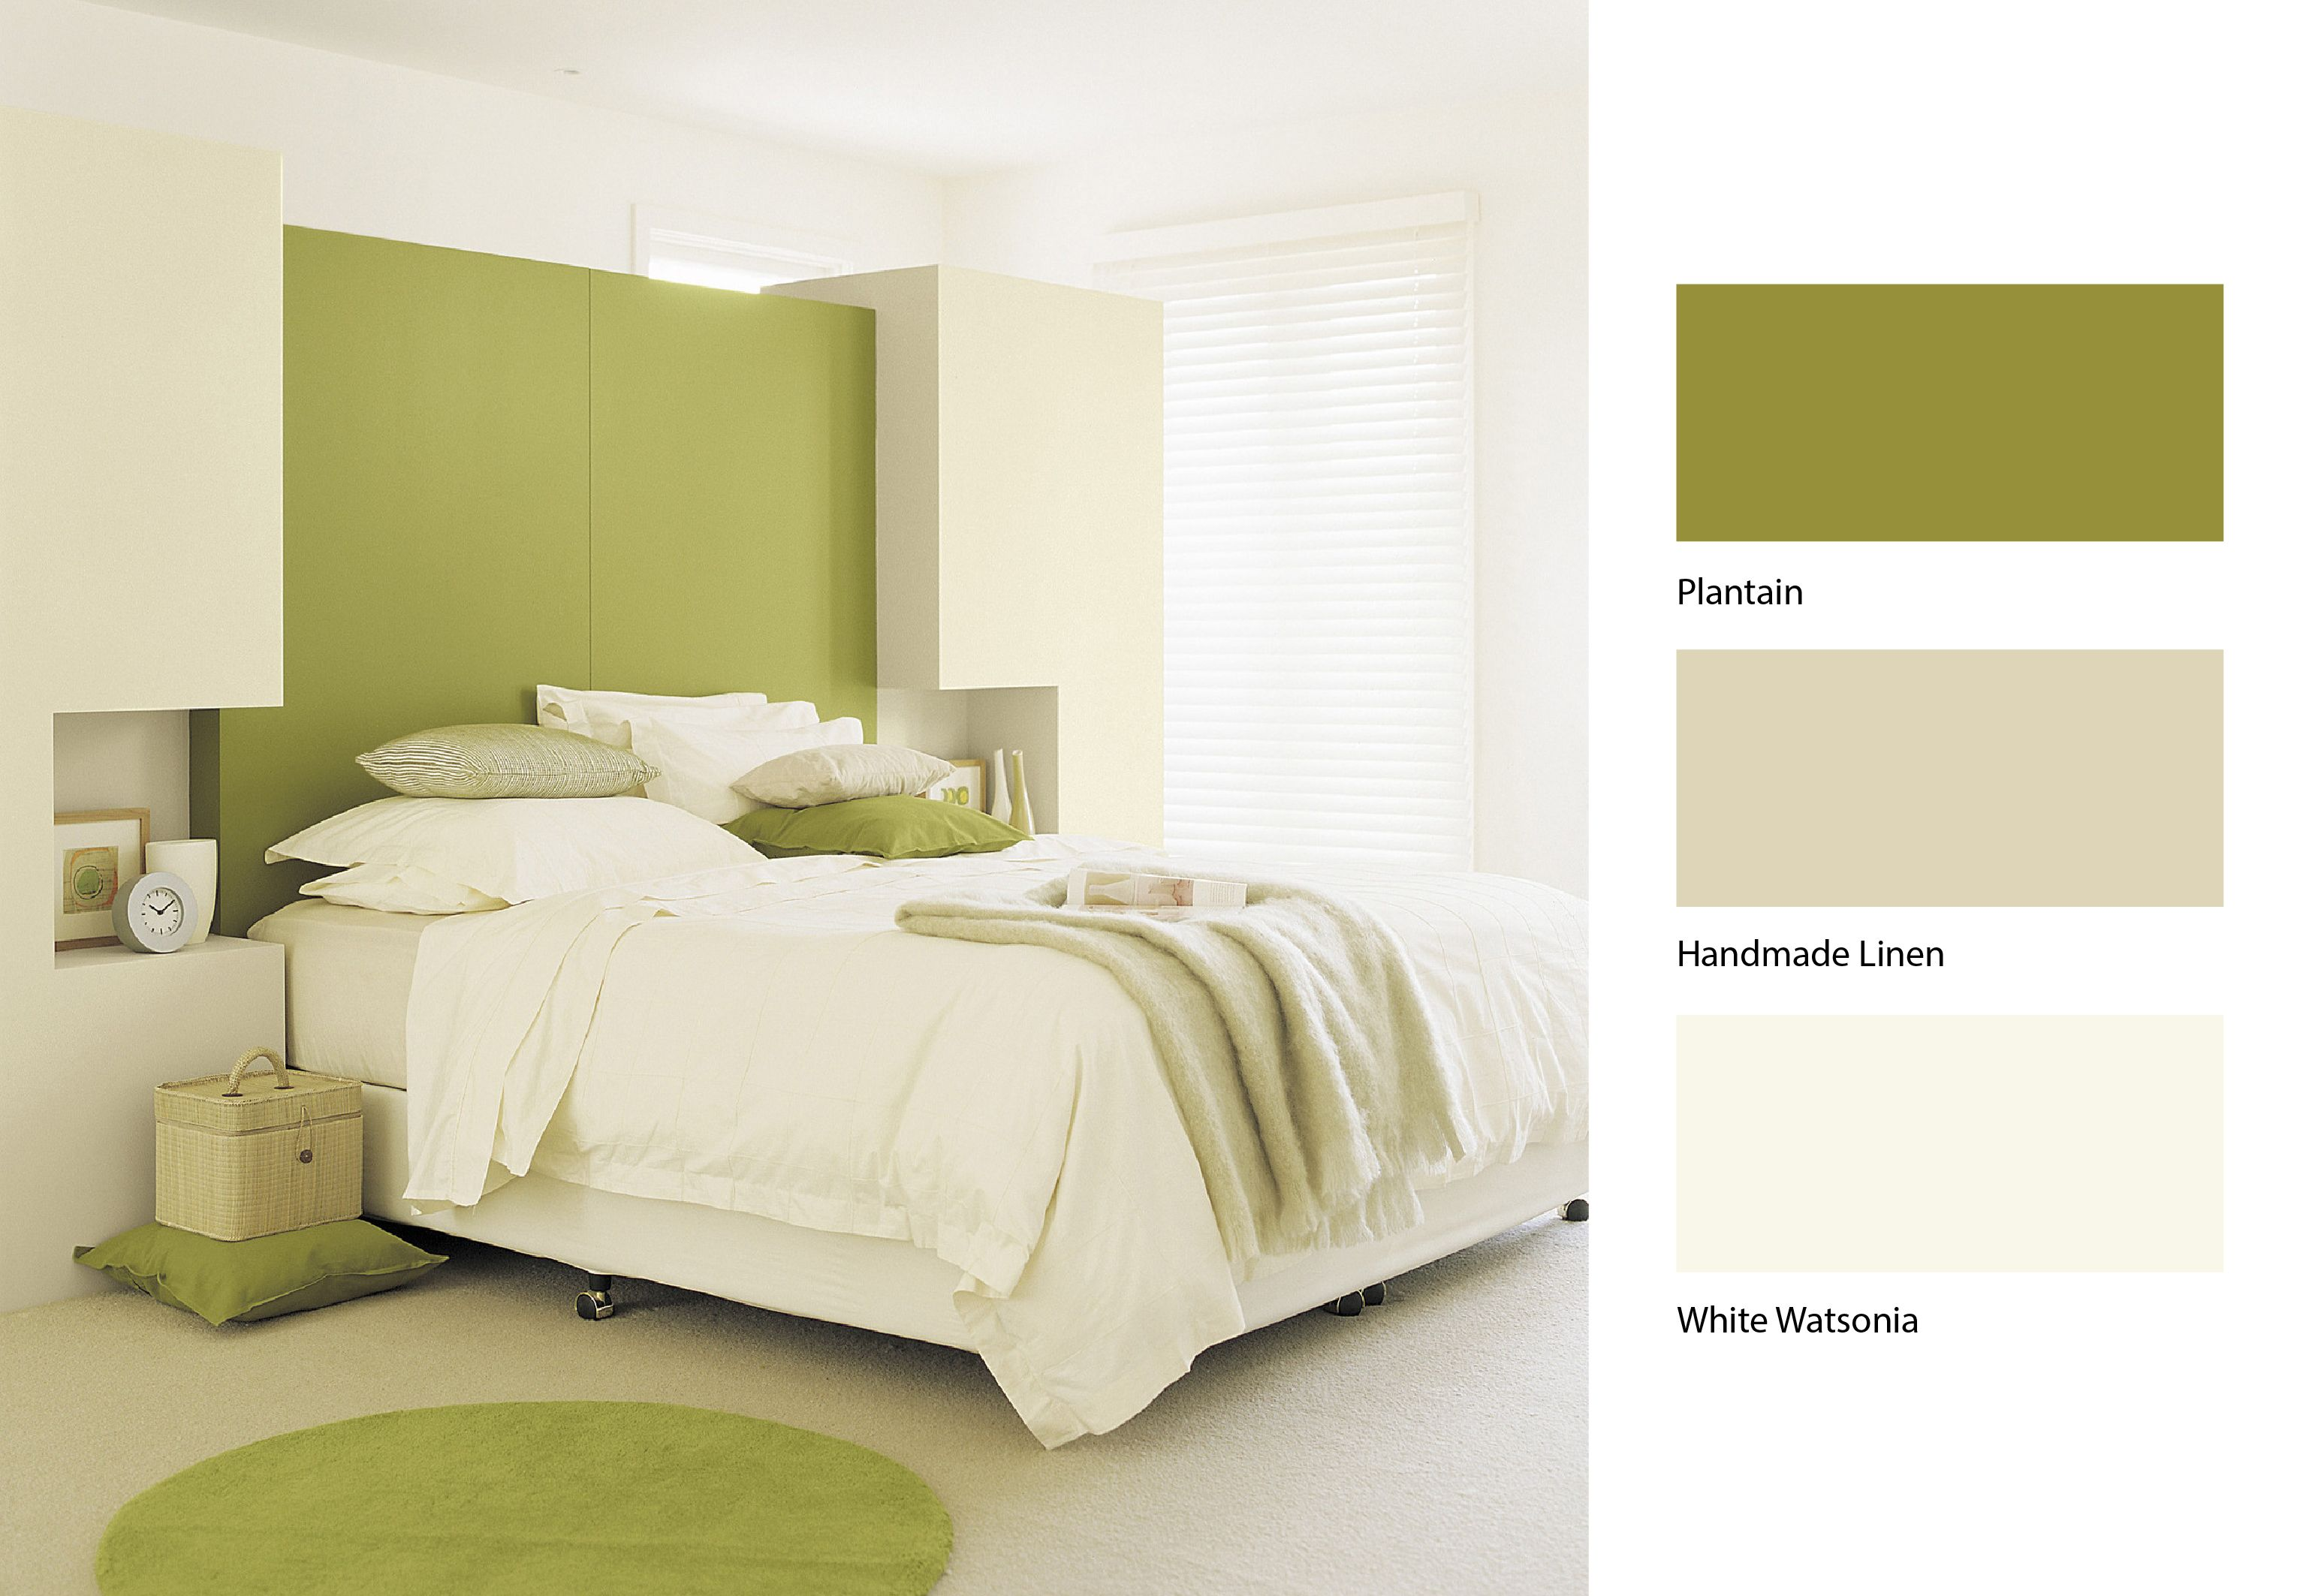 Do You Think Dulux Plantain And Dulux Handmade Linen Are